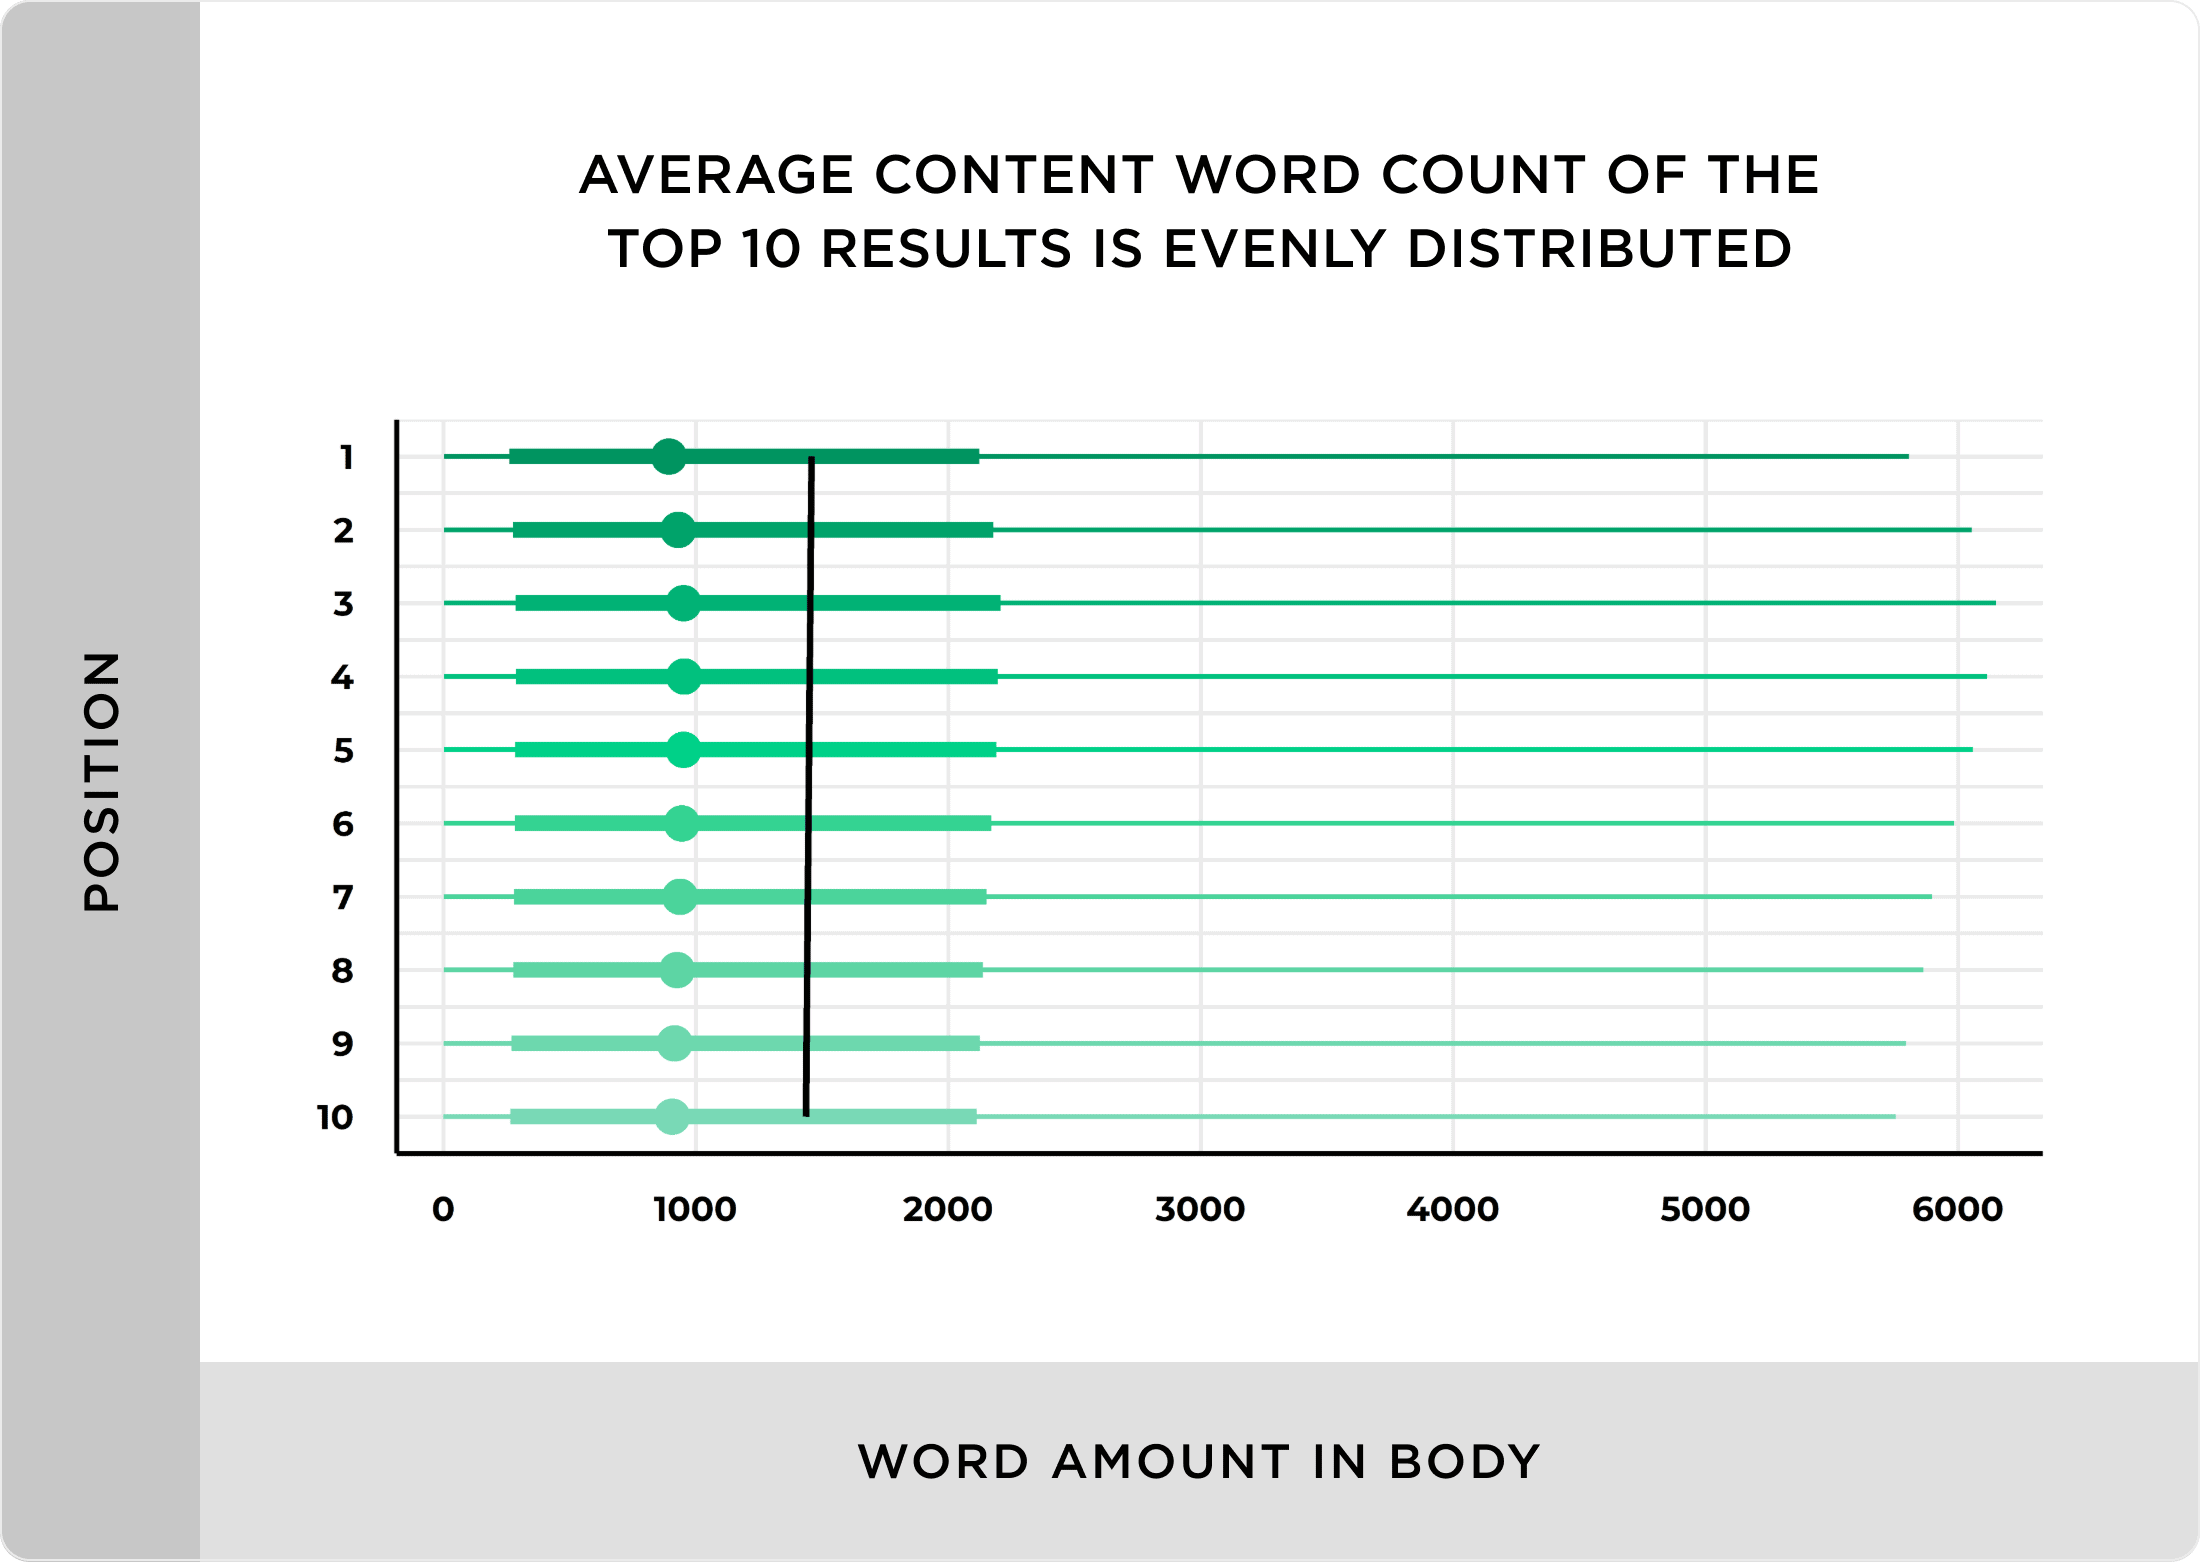 Average content word count of the top 10 results is evenly distributed